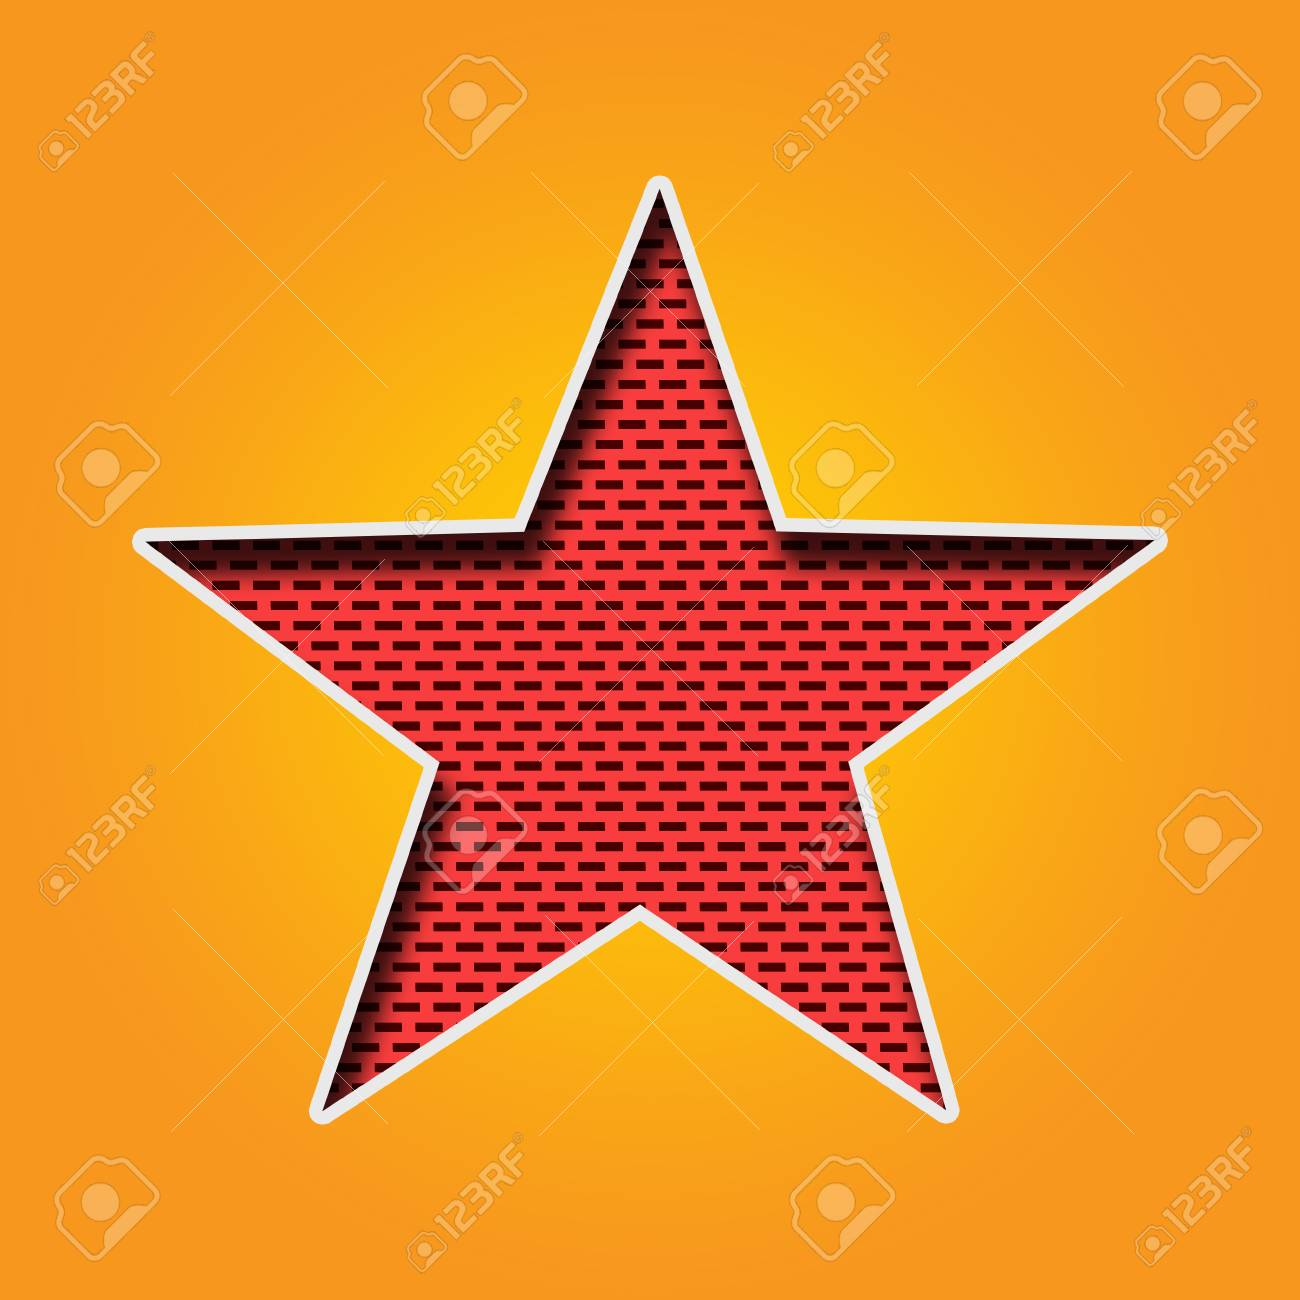 Single Star Icon In Orange And Yellow Color. This Is A Star Icon ...